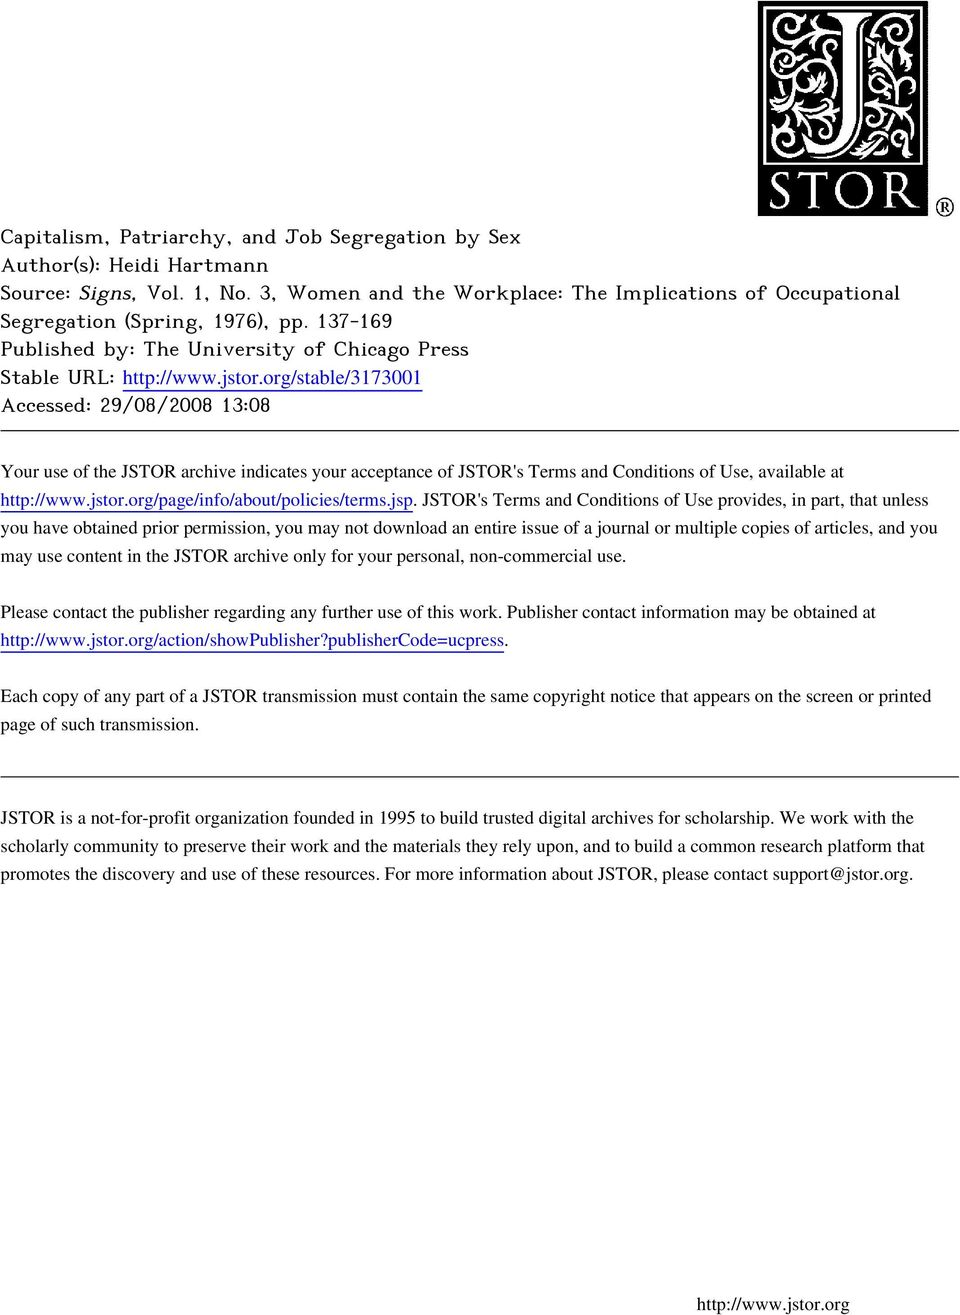 org/stable/3173001 Accessed: 29/08/2008 13:08 Your use of the JSTOR archive indicates your acceptance of JSTOR's Terms and Conditions of Use, available at http://www.jstor.